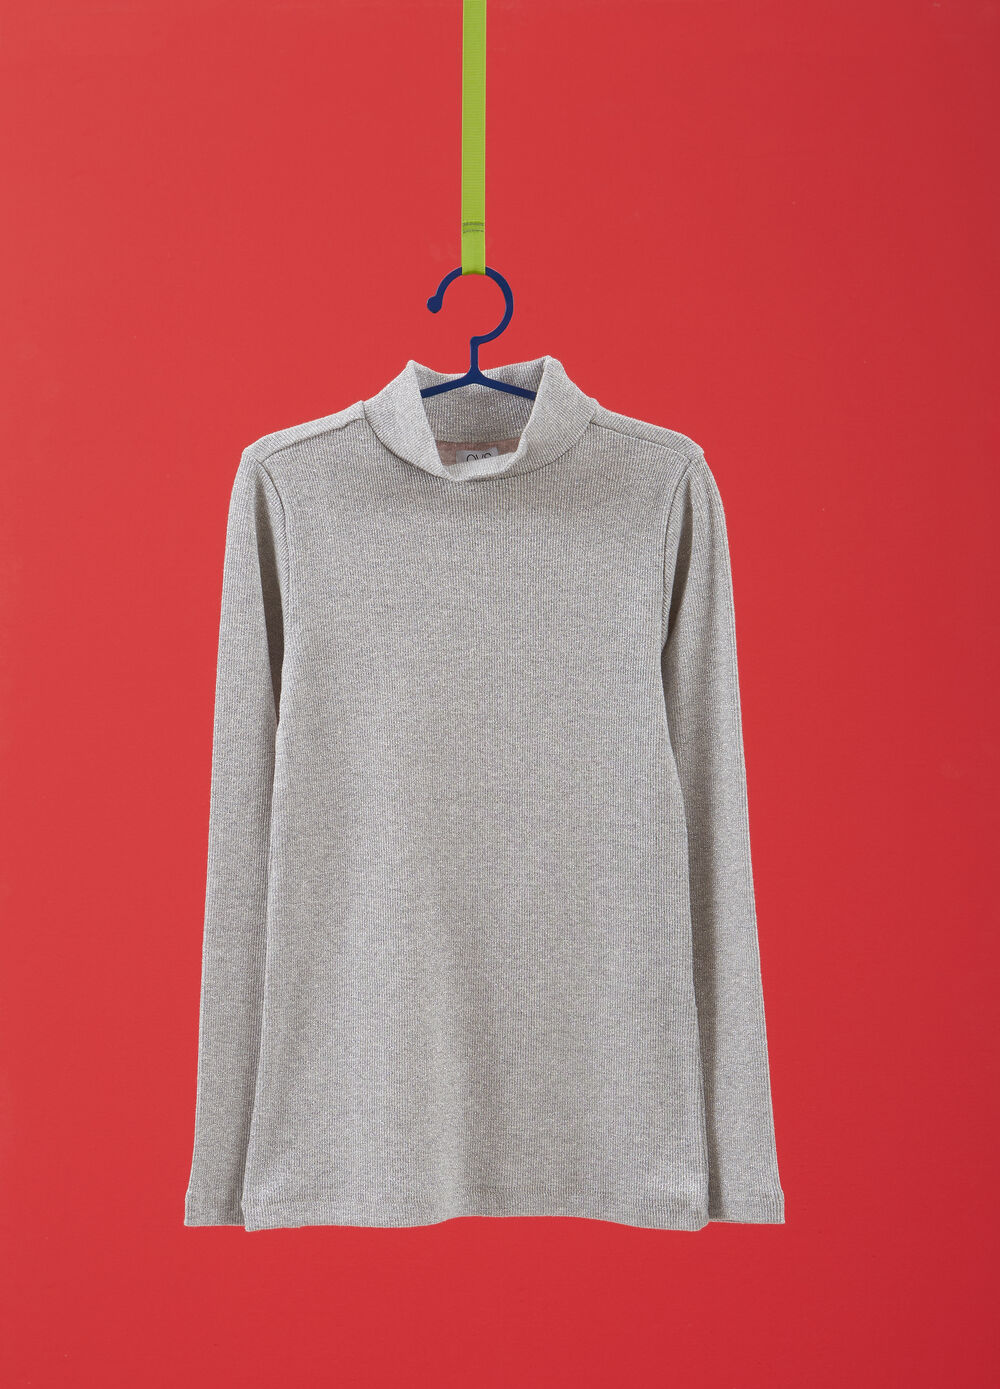 Cotton blend turtleneck with lurex